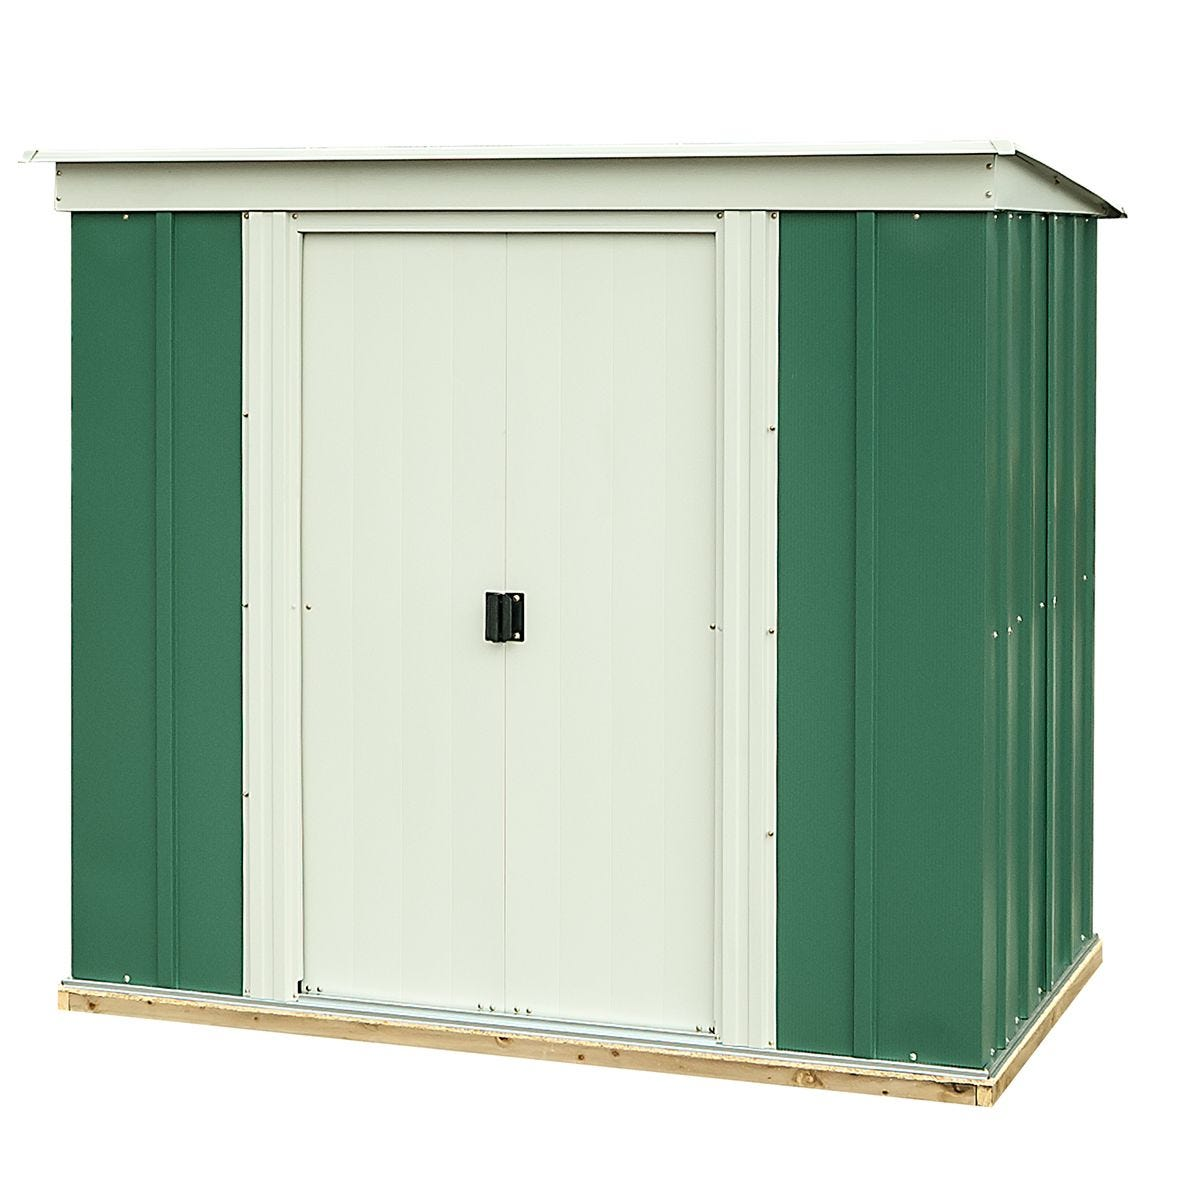 Rowlinson 6 x 4 Greenvale Metal Pent Shed With Floor